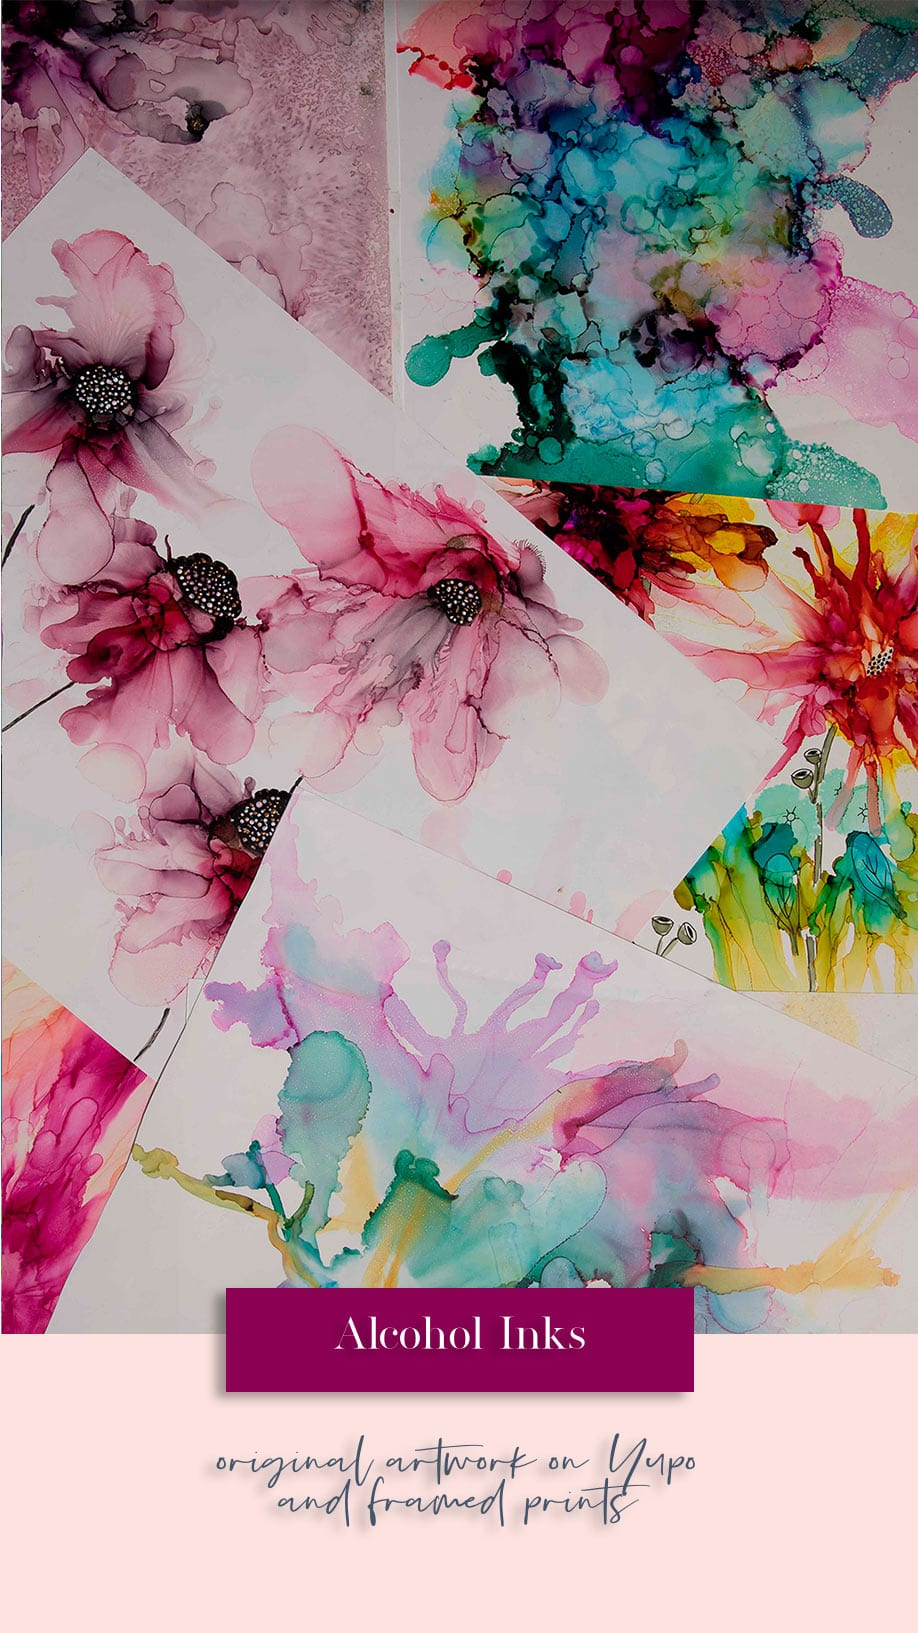 Alcohol Inks Category Image 16-9